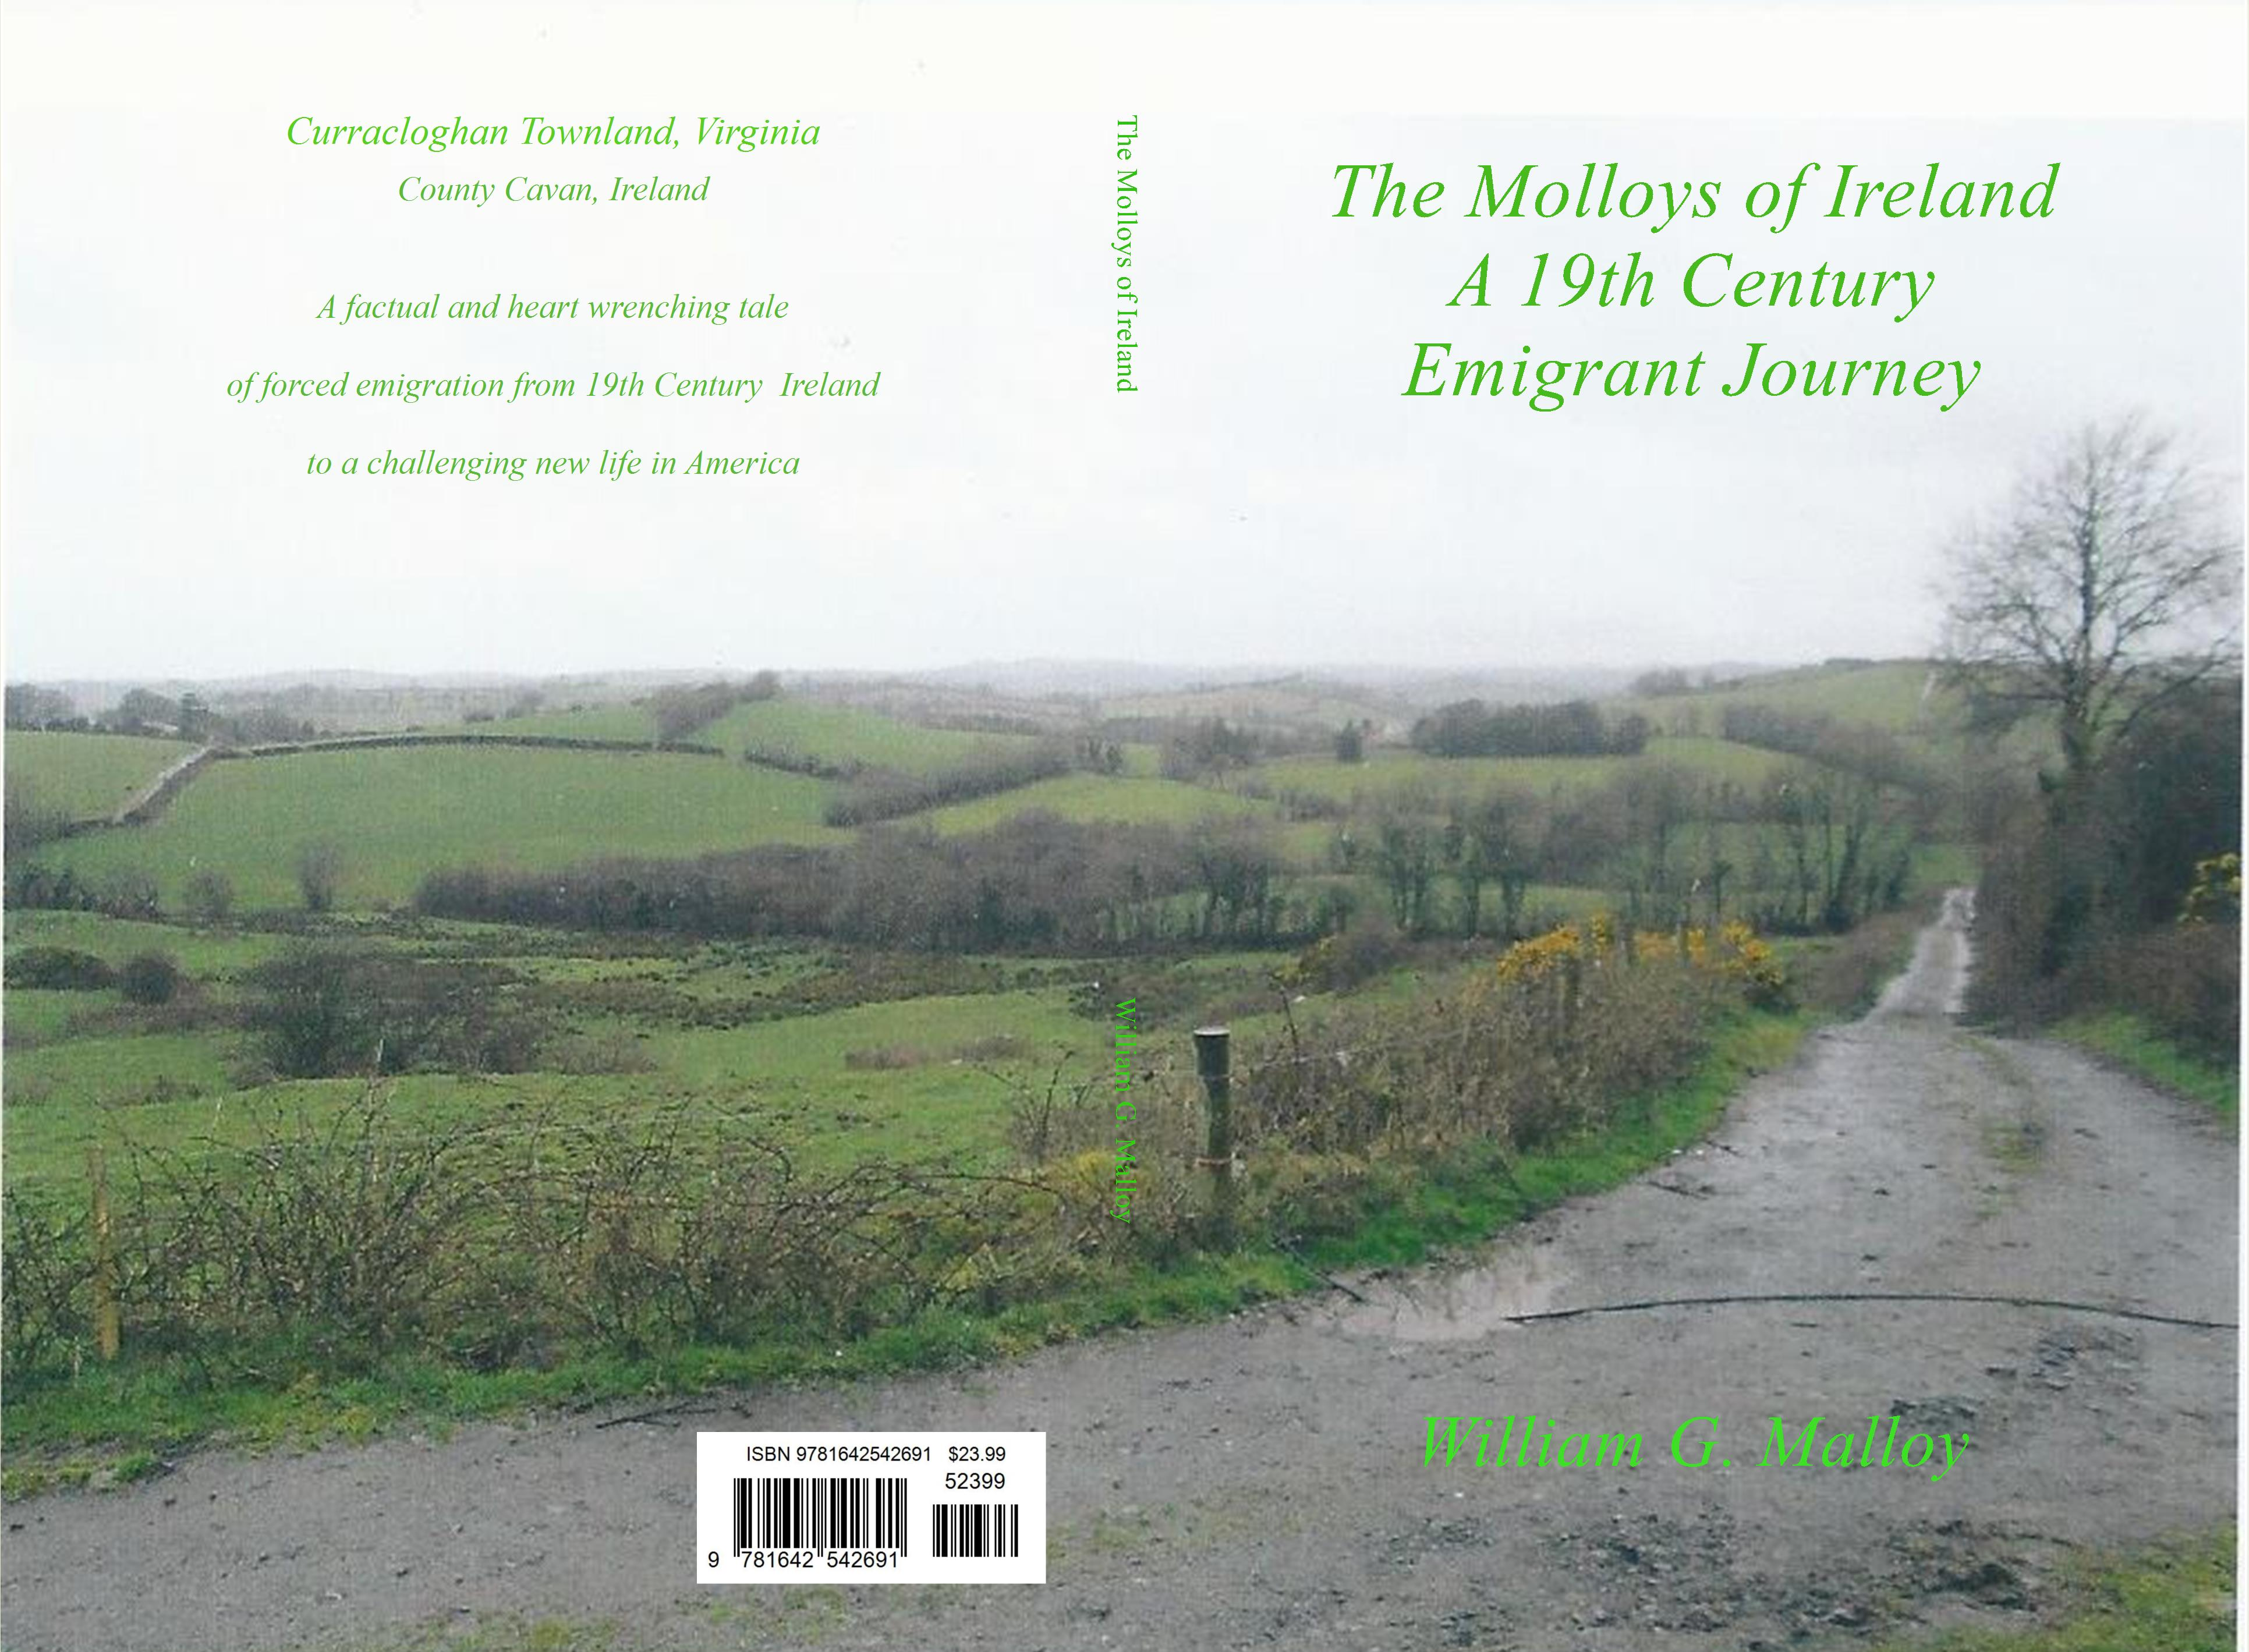 The Molloys of Ireland cover image